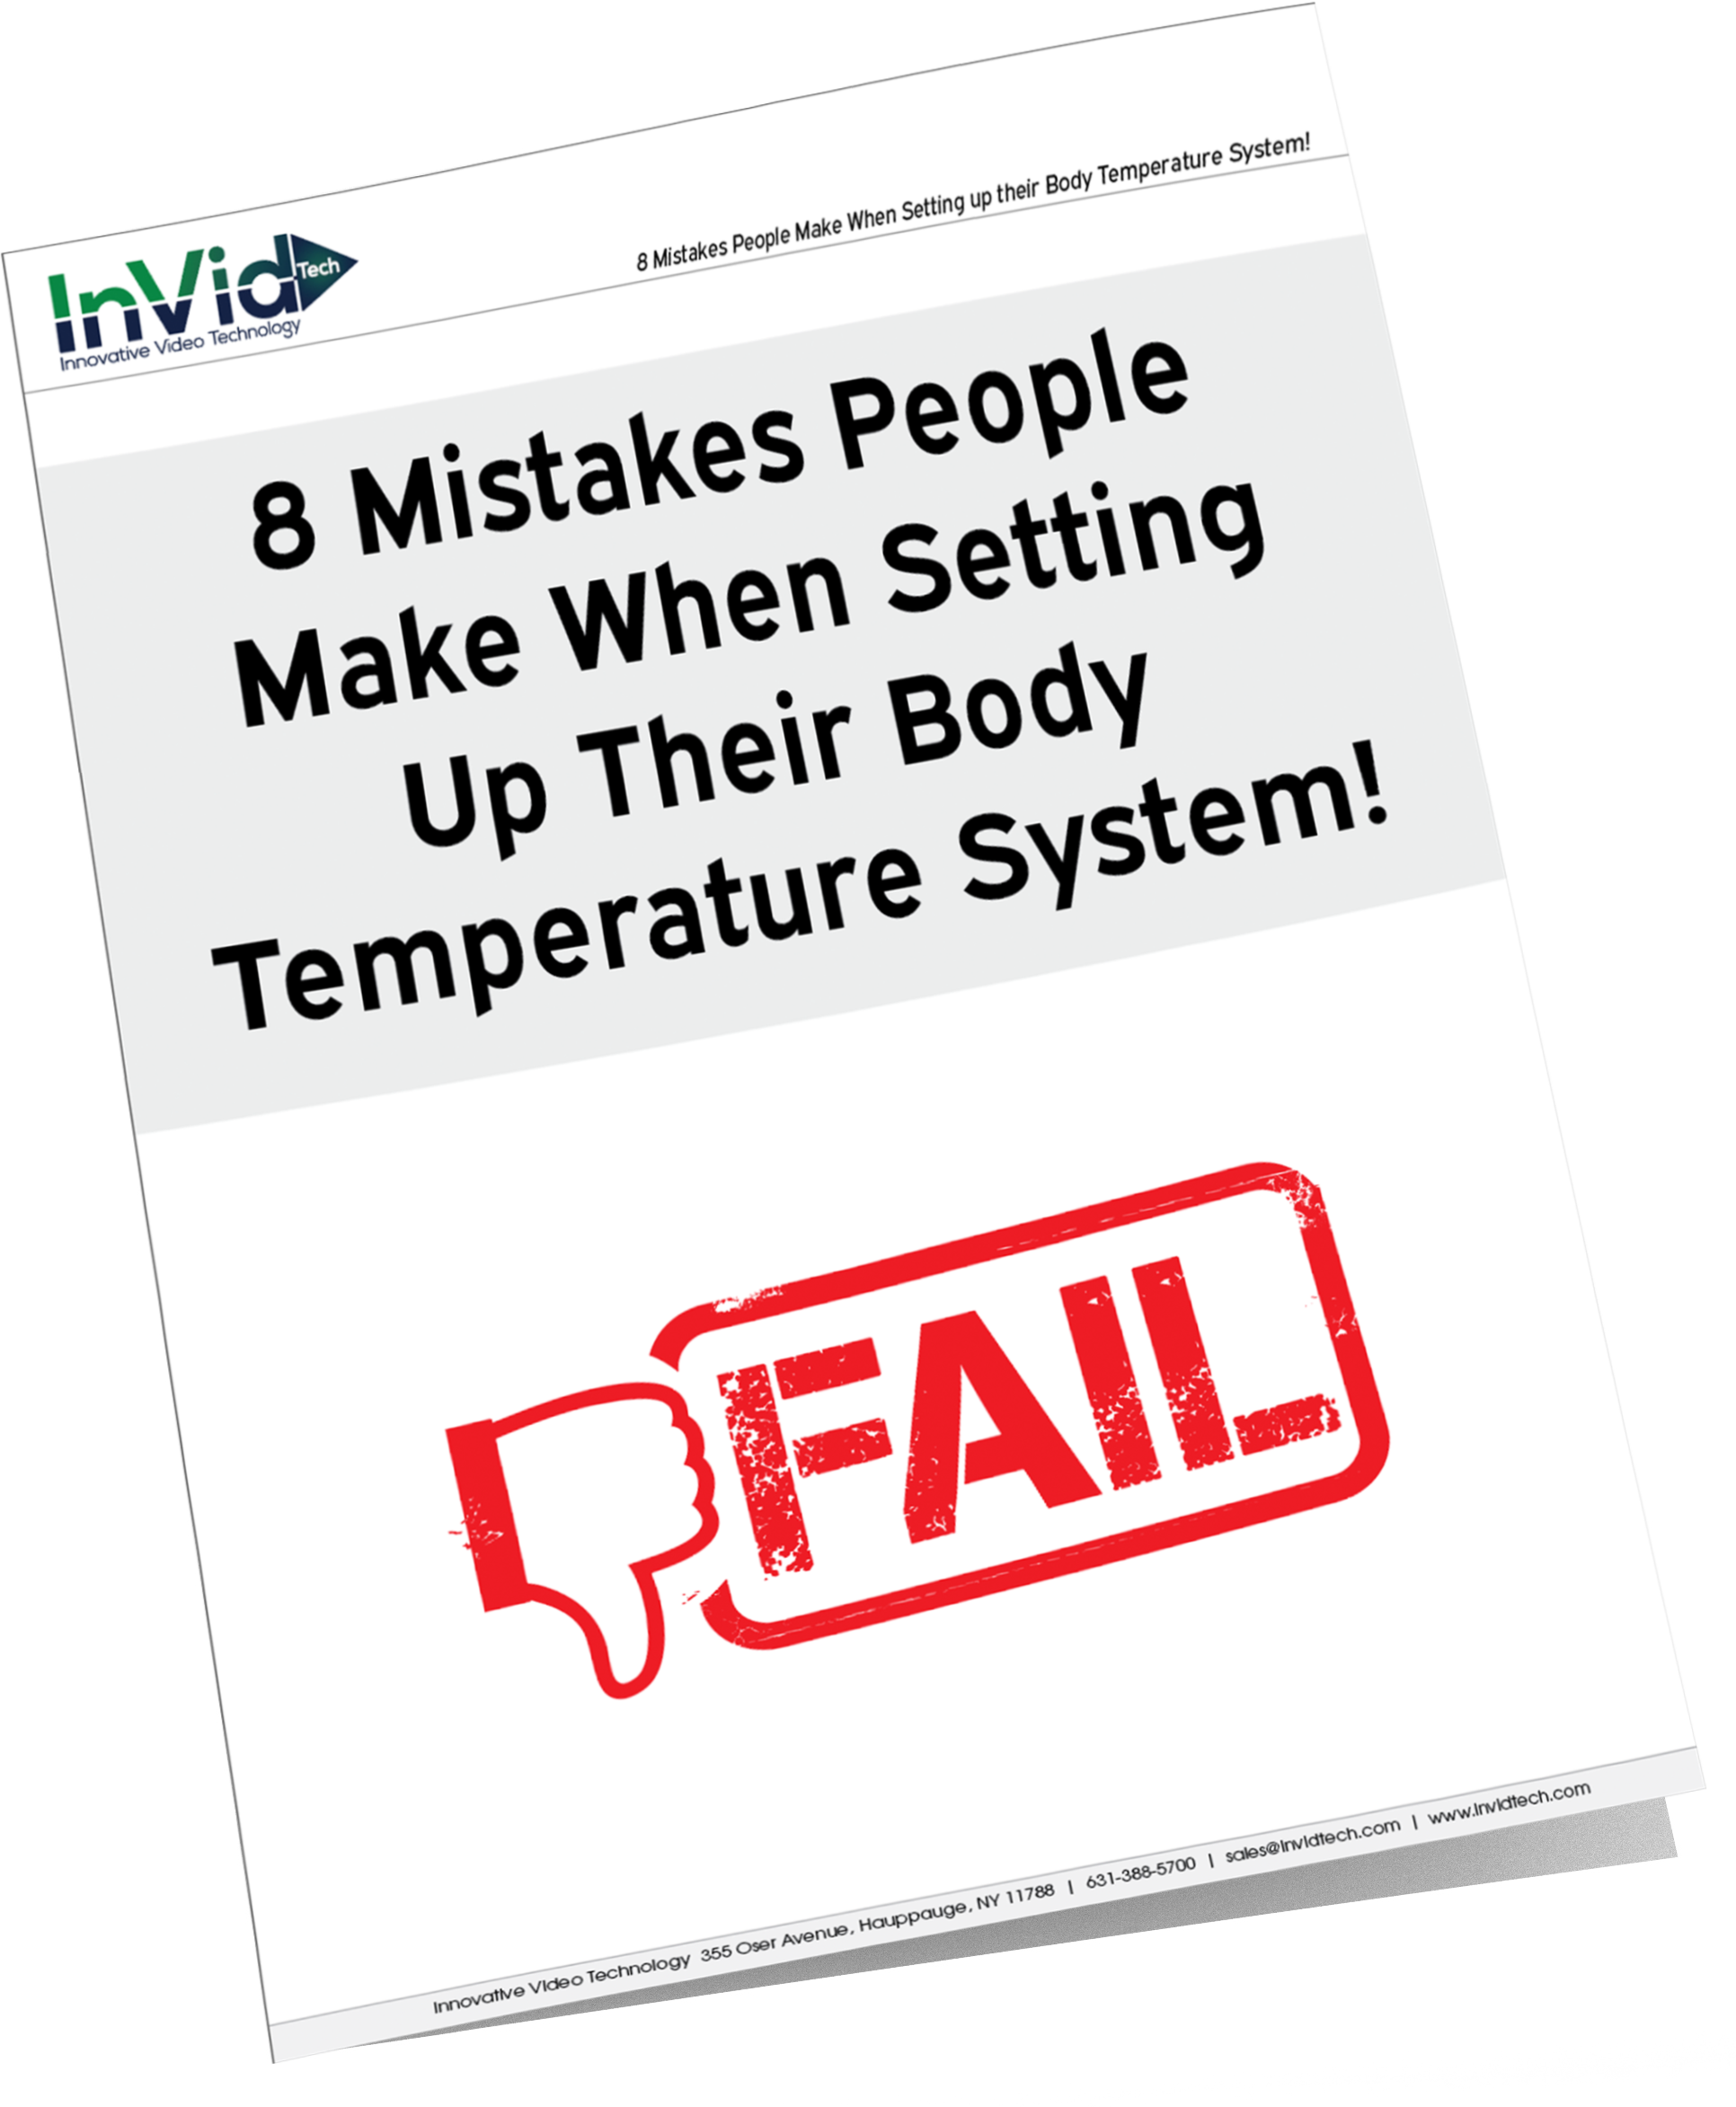 8Mistakes_booklet